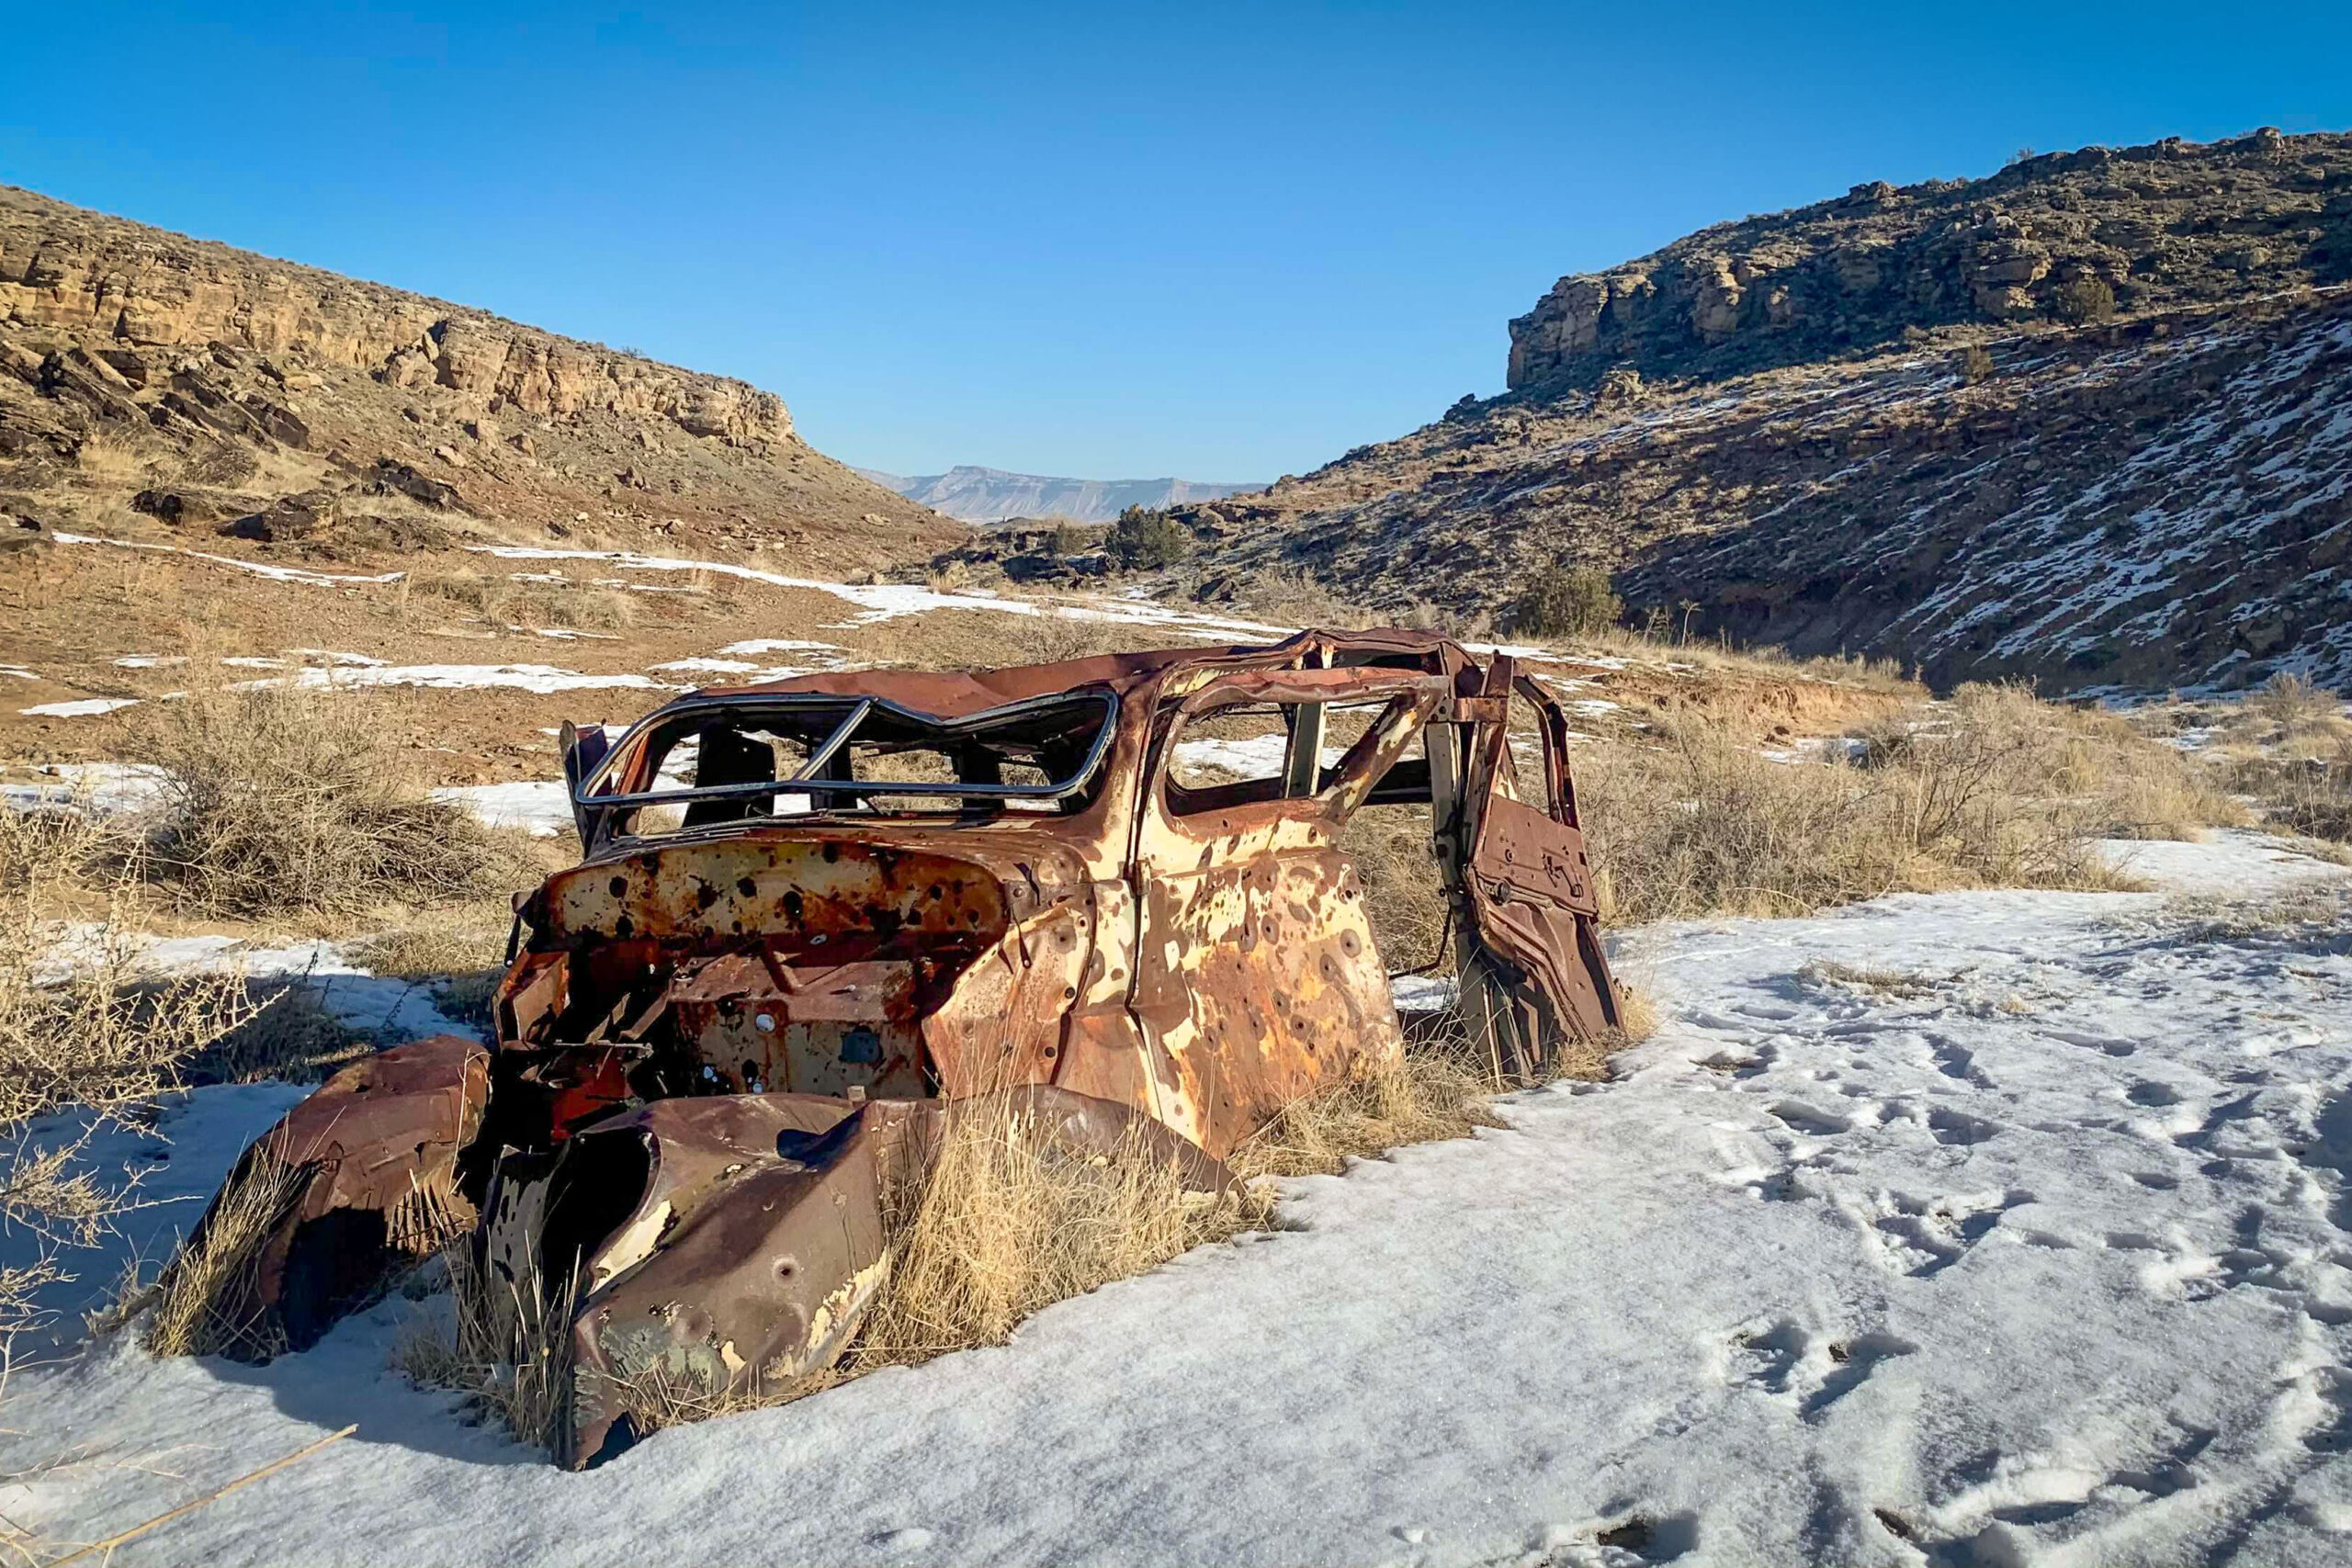 Clunker gets its name from this old, rusted car visible below the trail. While the route is a local favorite, it's also hidden away from large roads, giving it a hidden feel.